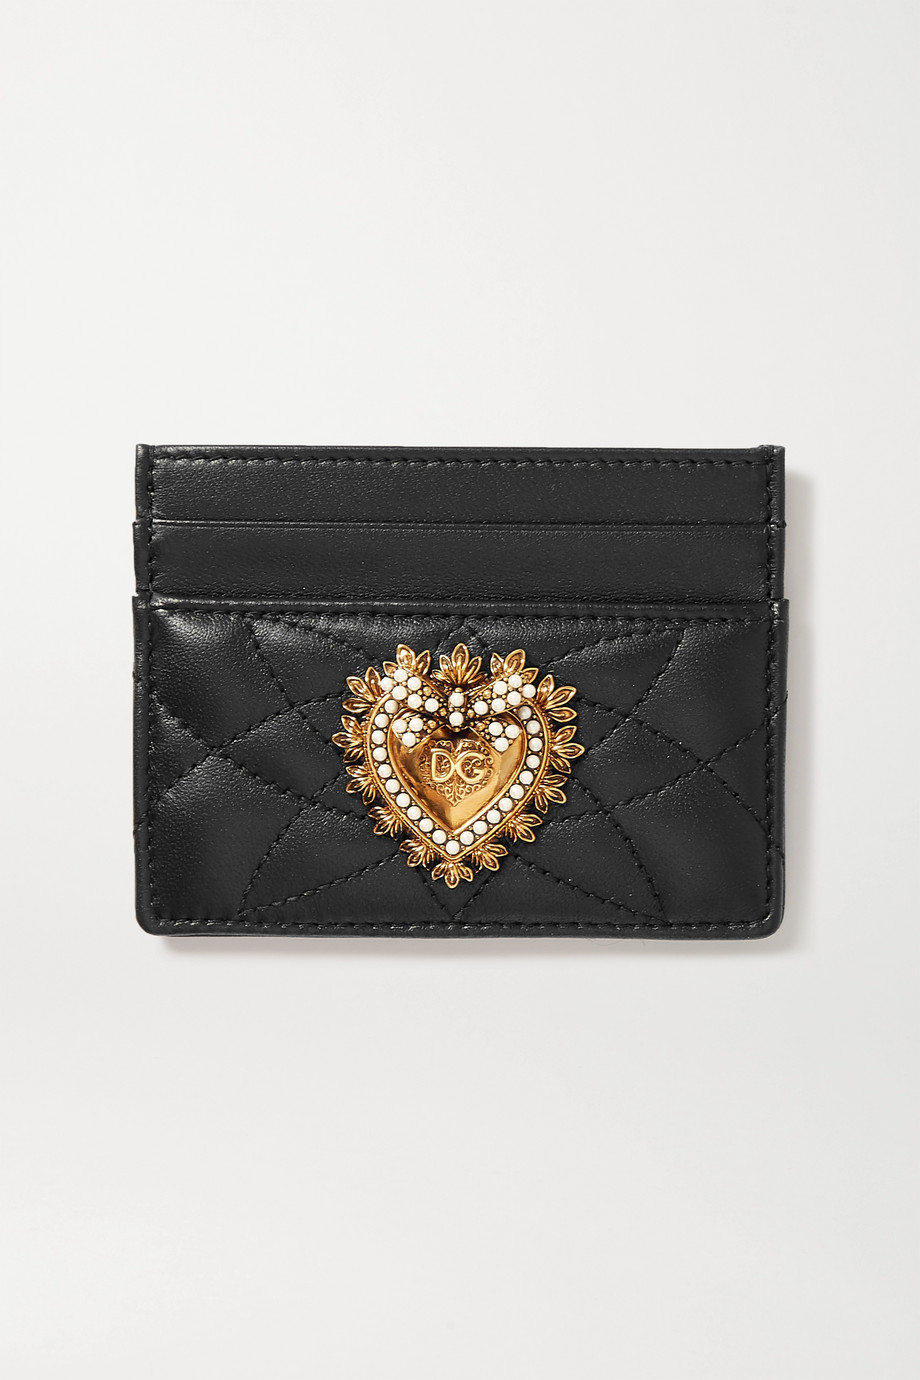 Dolce & Gabbana Devotion embellished quilted leather cardholder